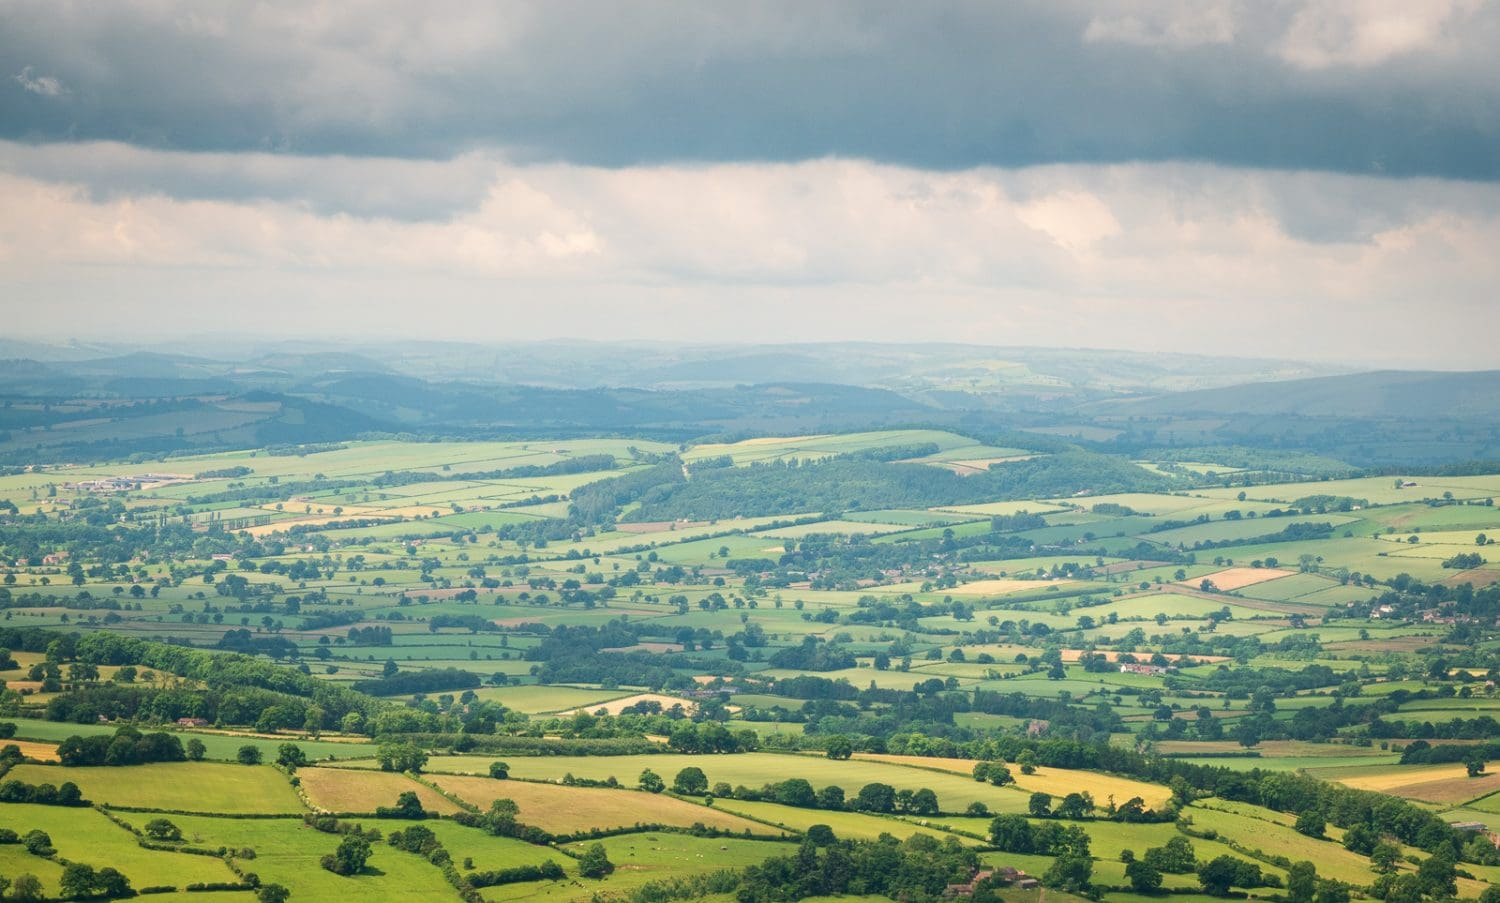 Wide shot of patchwork fields in the English countryside, showing no specific subject.